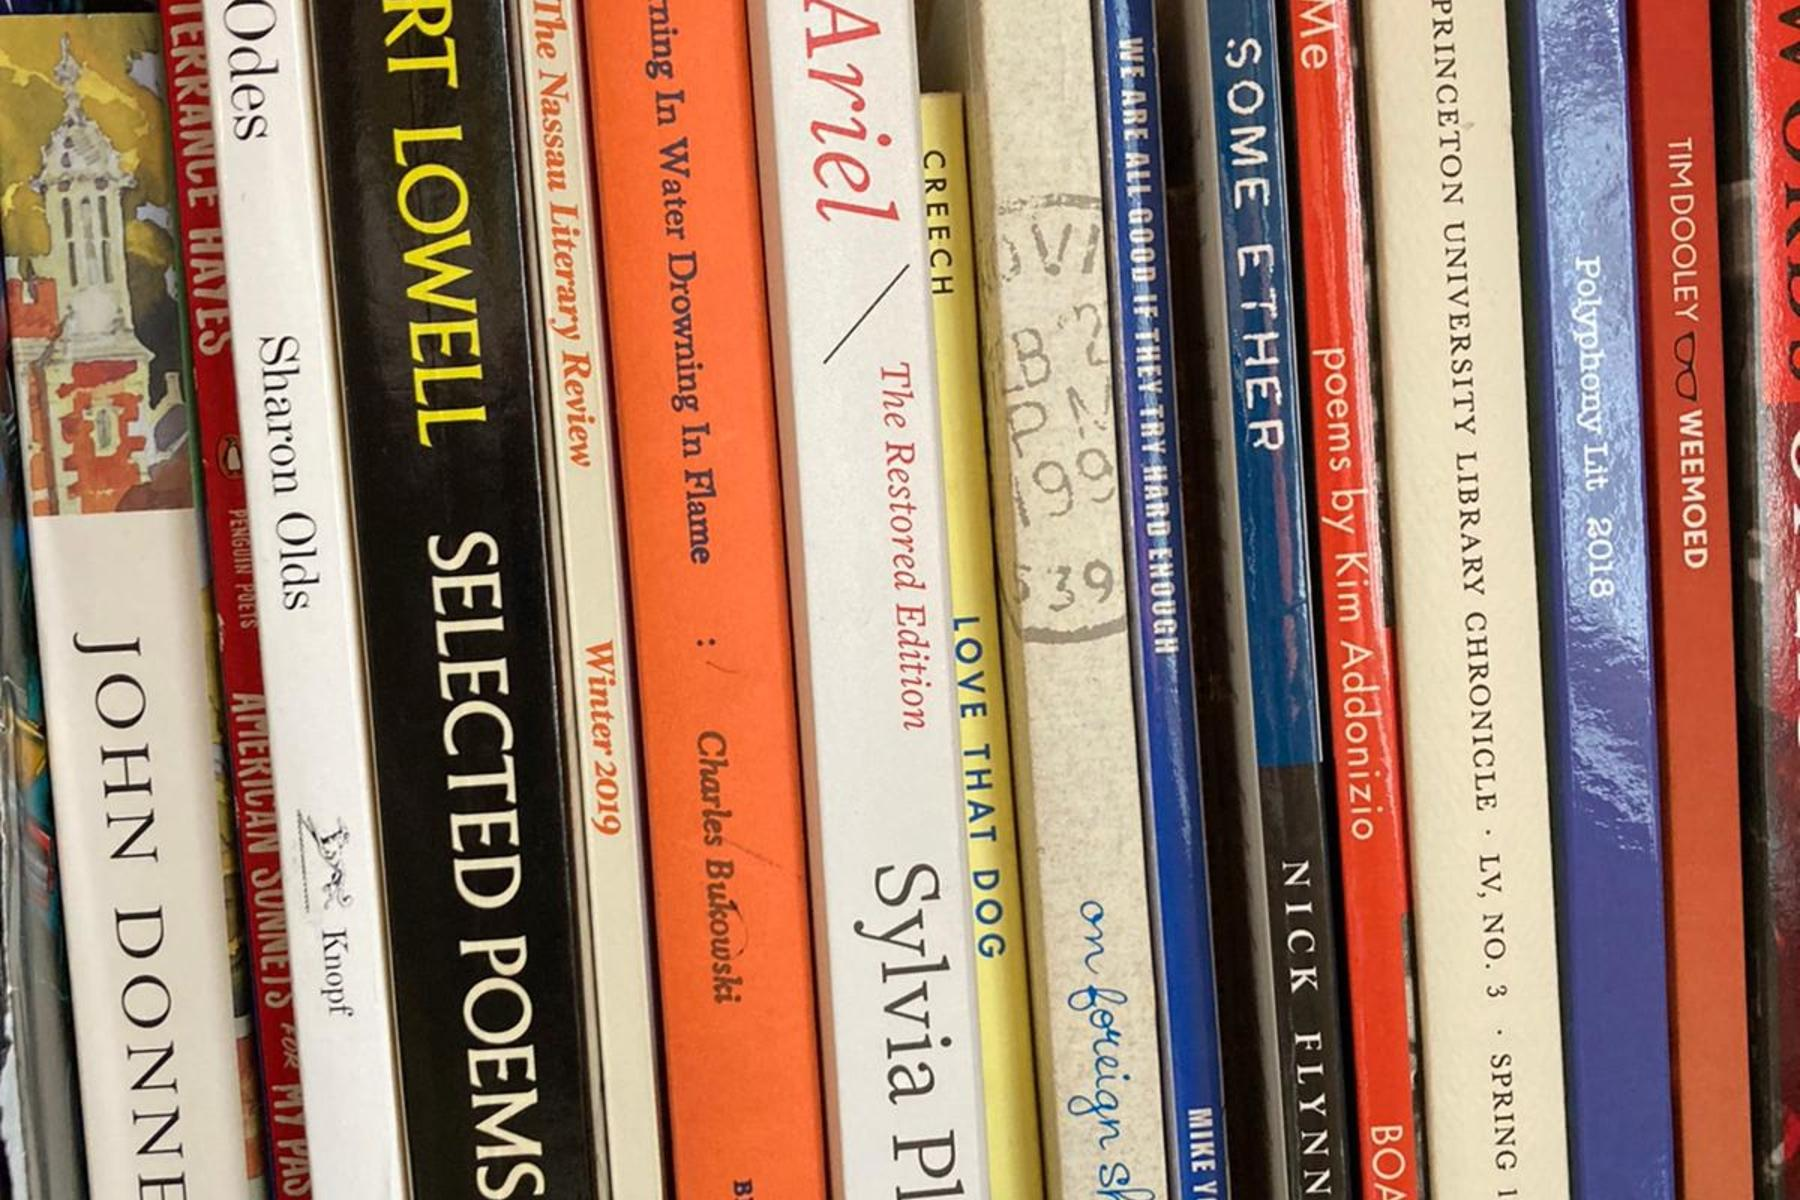 A bookshelf lined with poetry collections from Robert Lowell, John Donne, and Sharon Olds, among others.